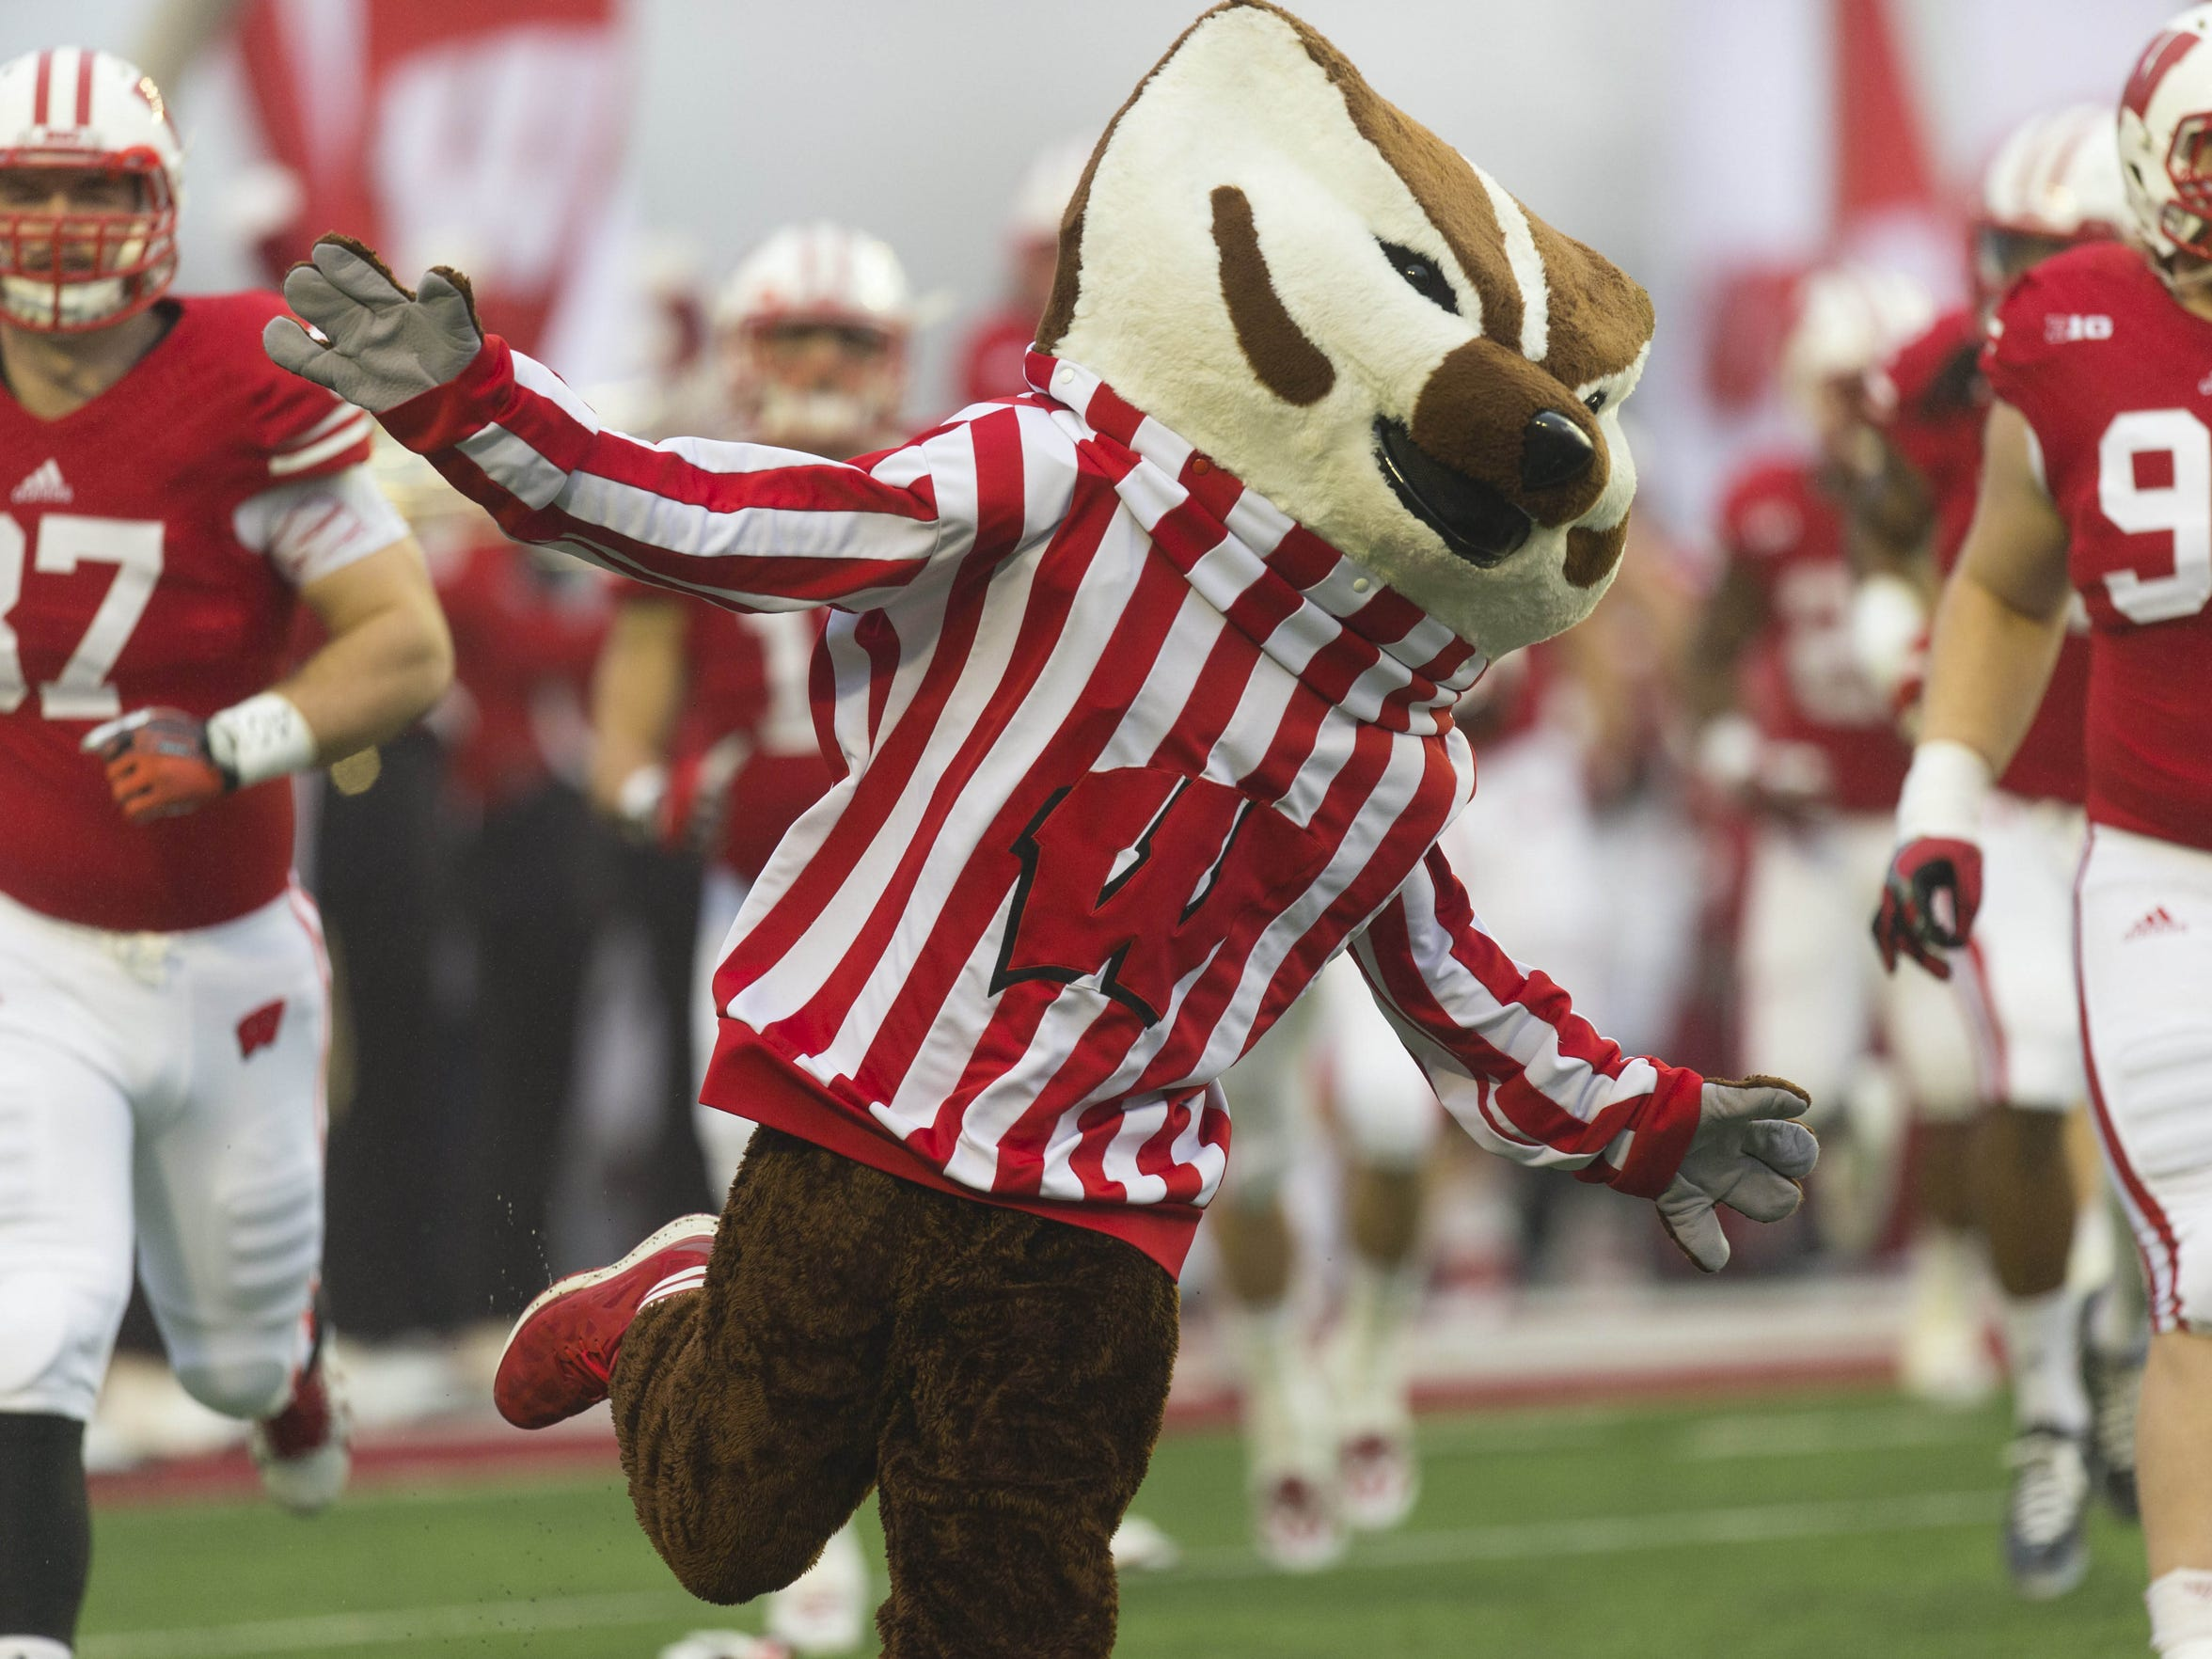 Bucky's excited the Badgers are playing at Lambeau. Are you?